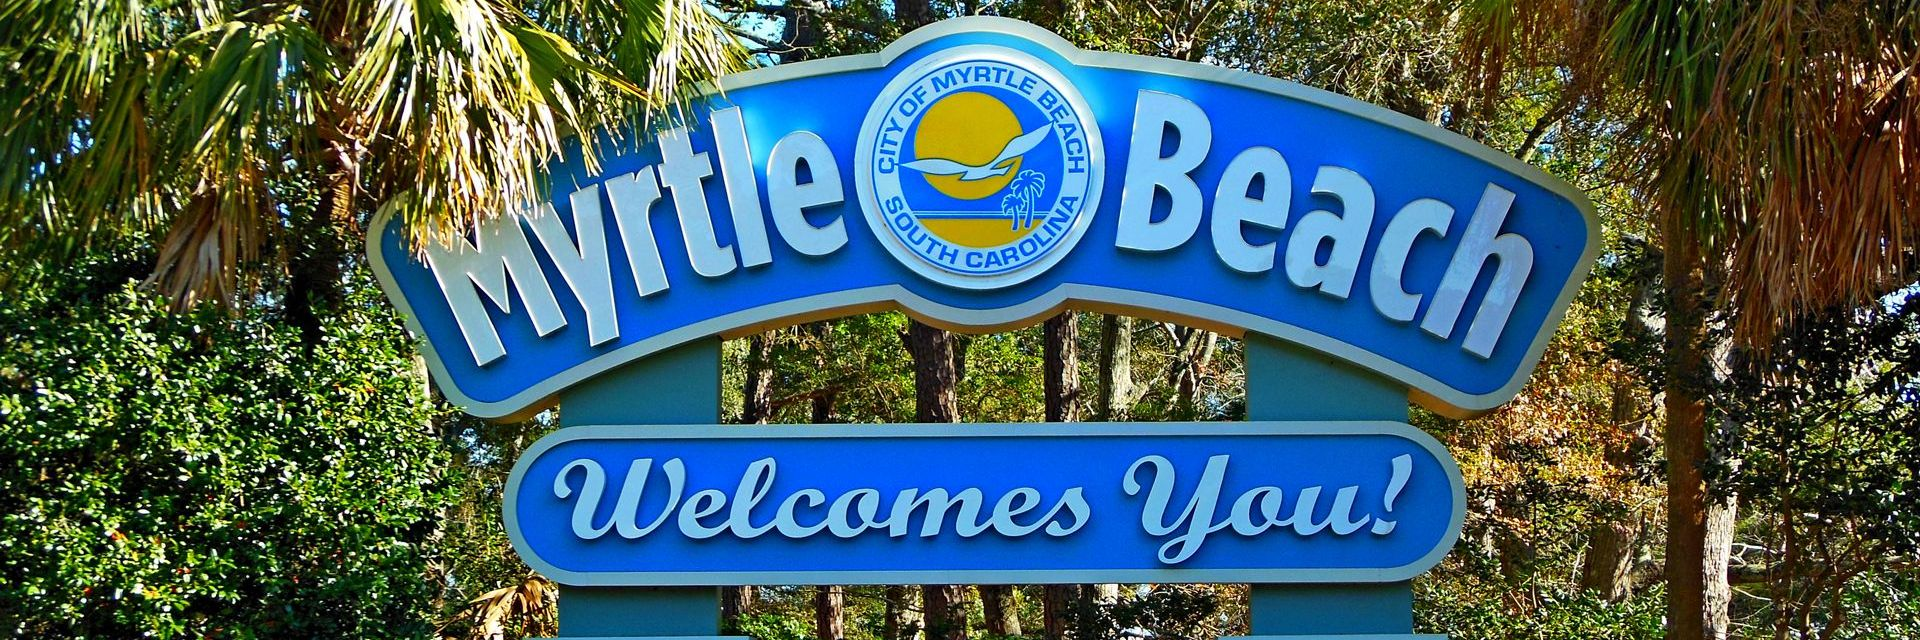 Welcome to Myrtle Beach South Carolina - Homes For Sale